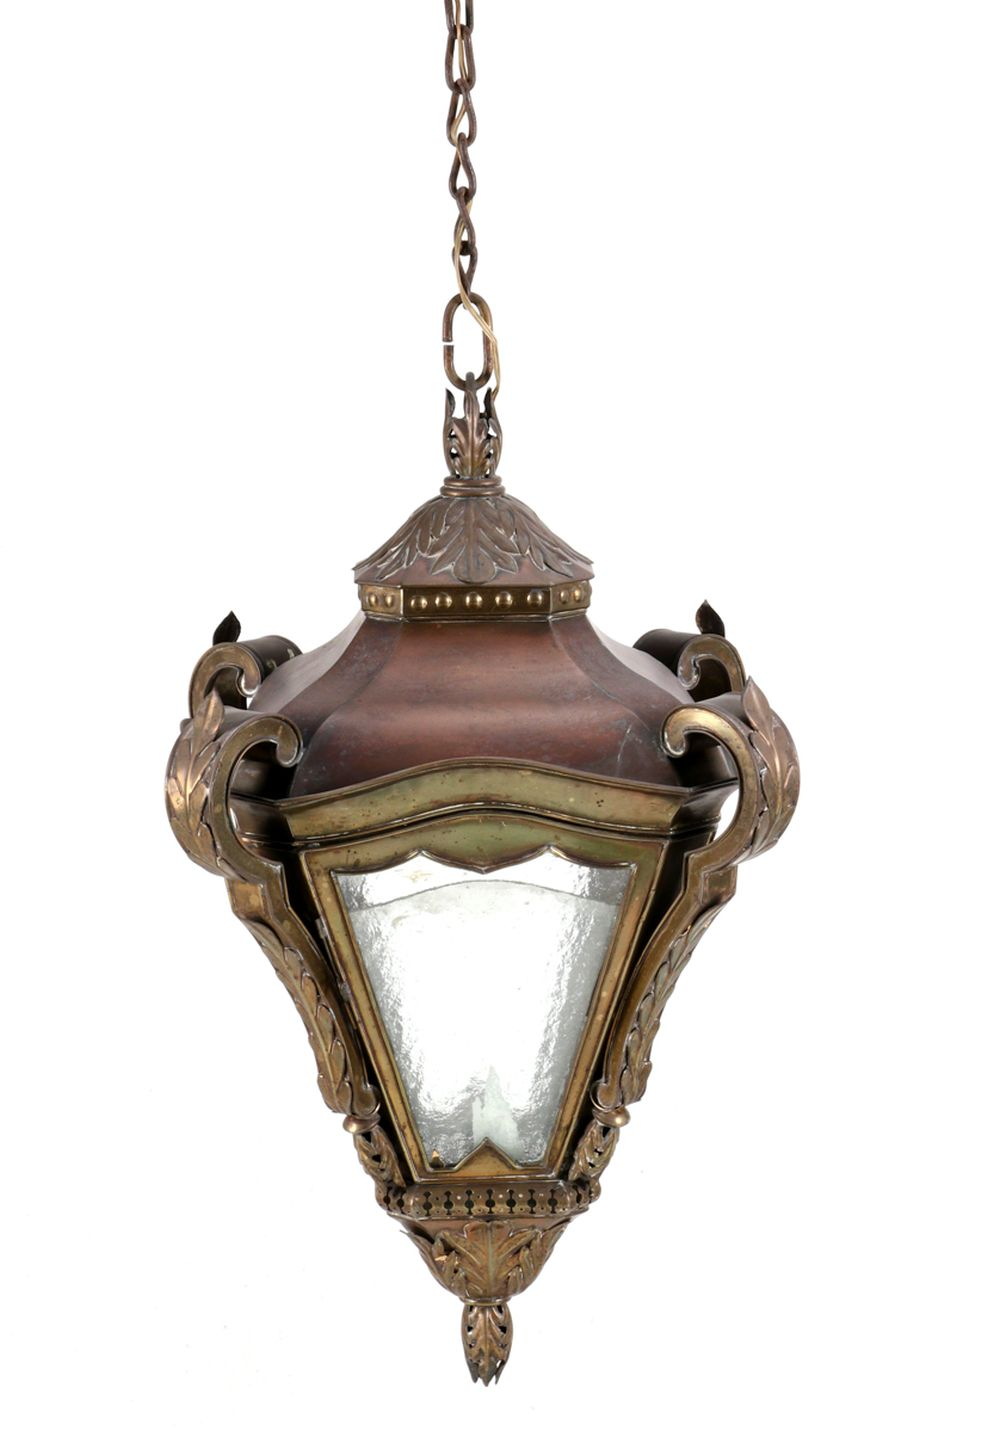 A CEILING LAMP